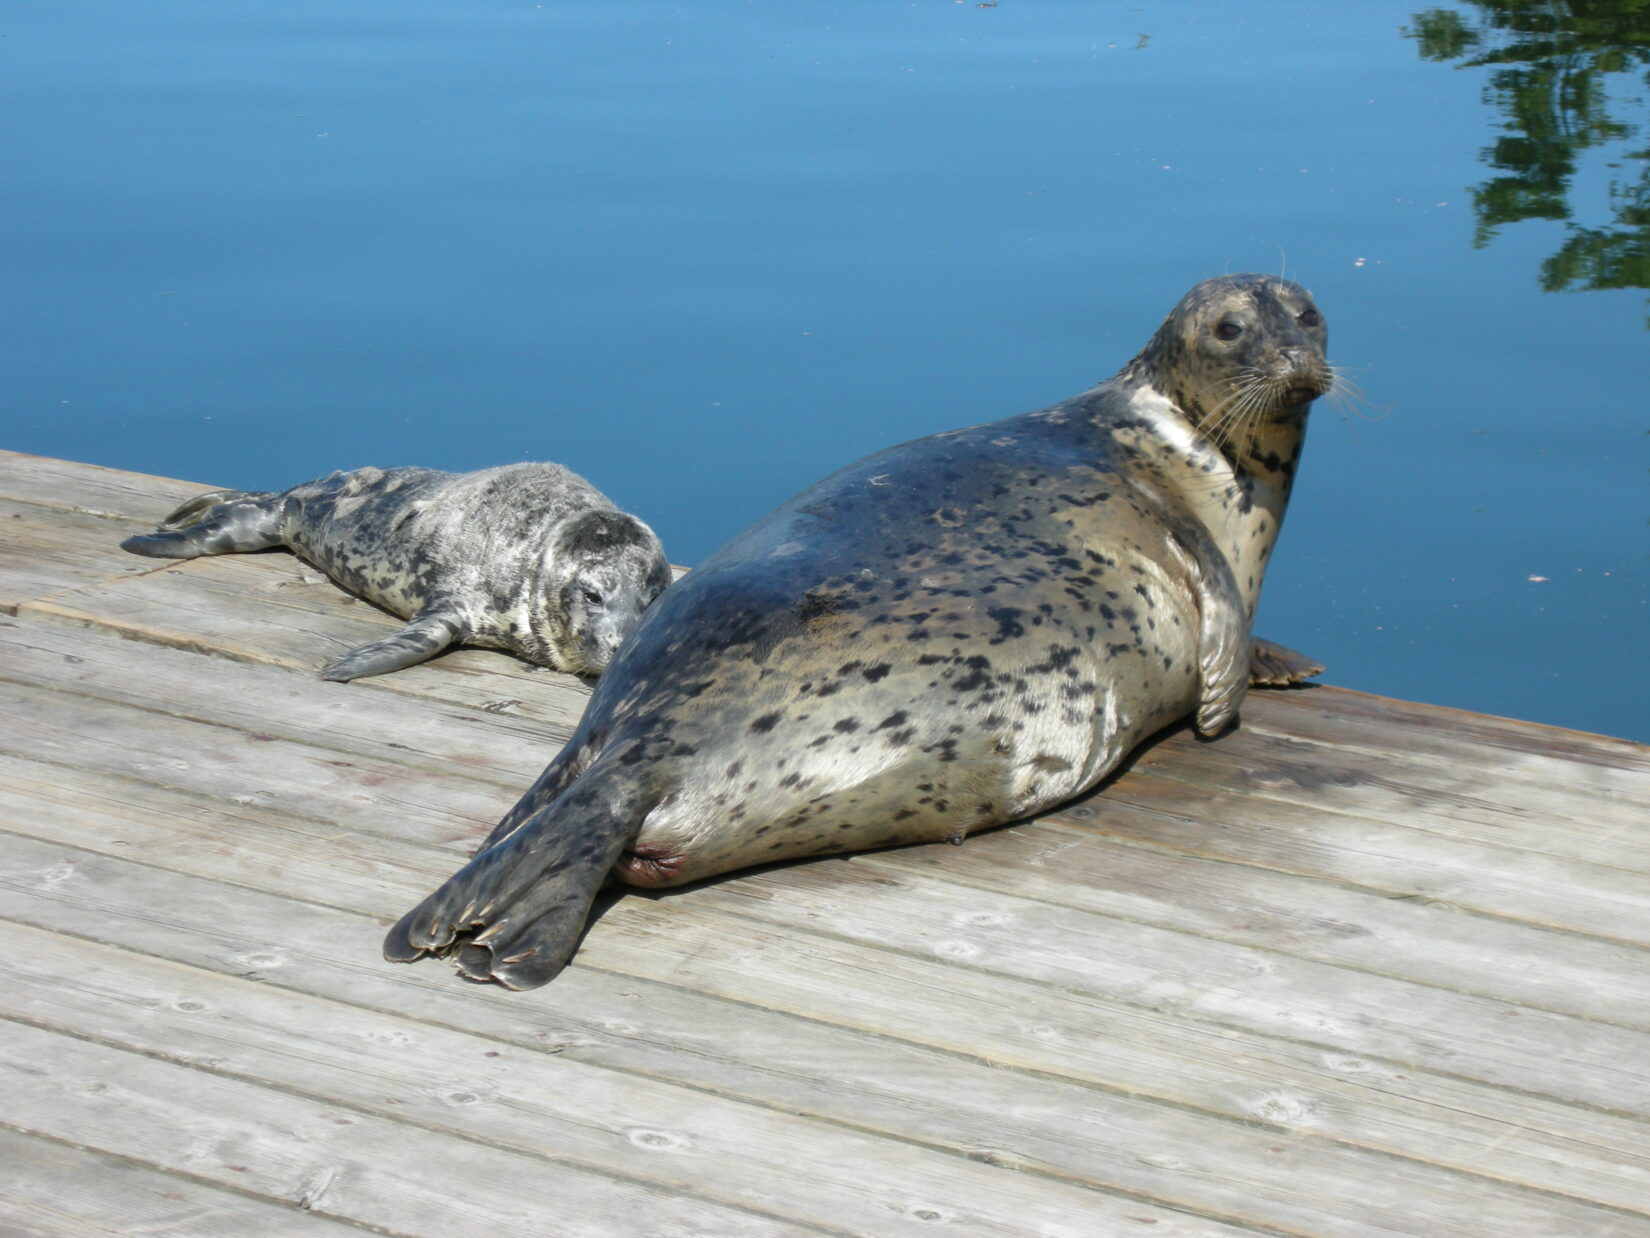 Harbour seal pup with mom on dock